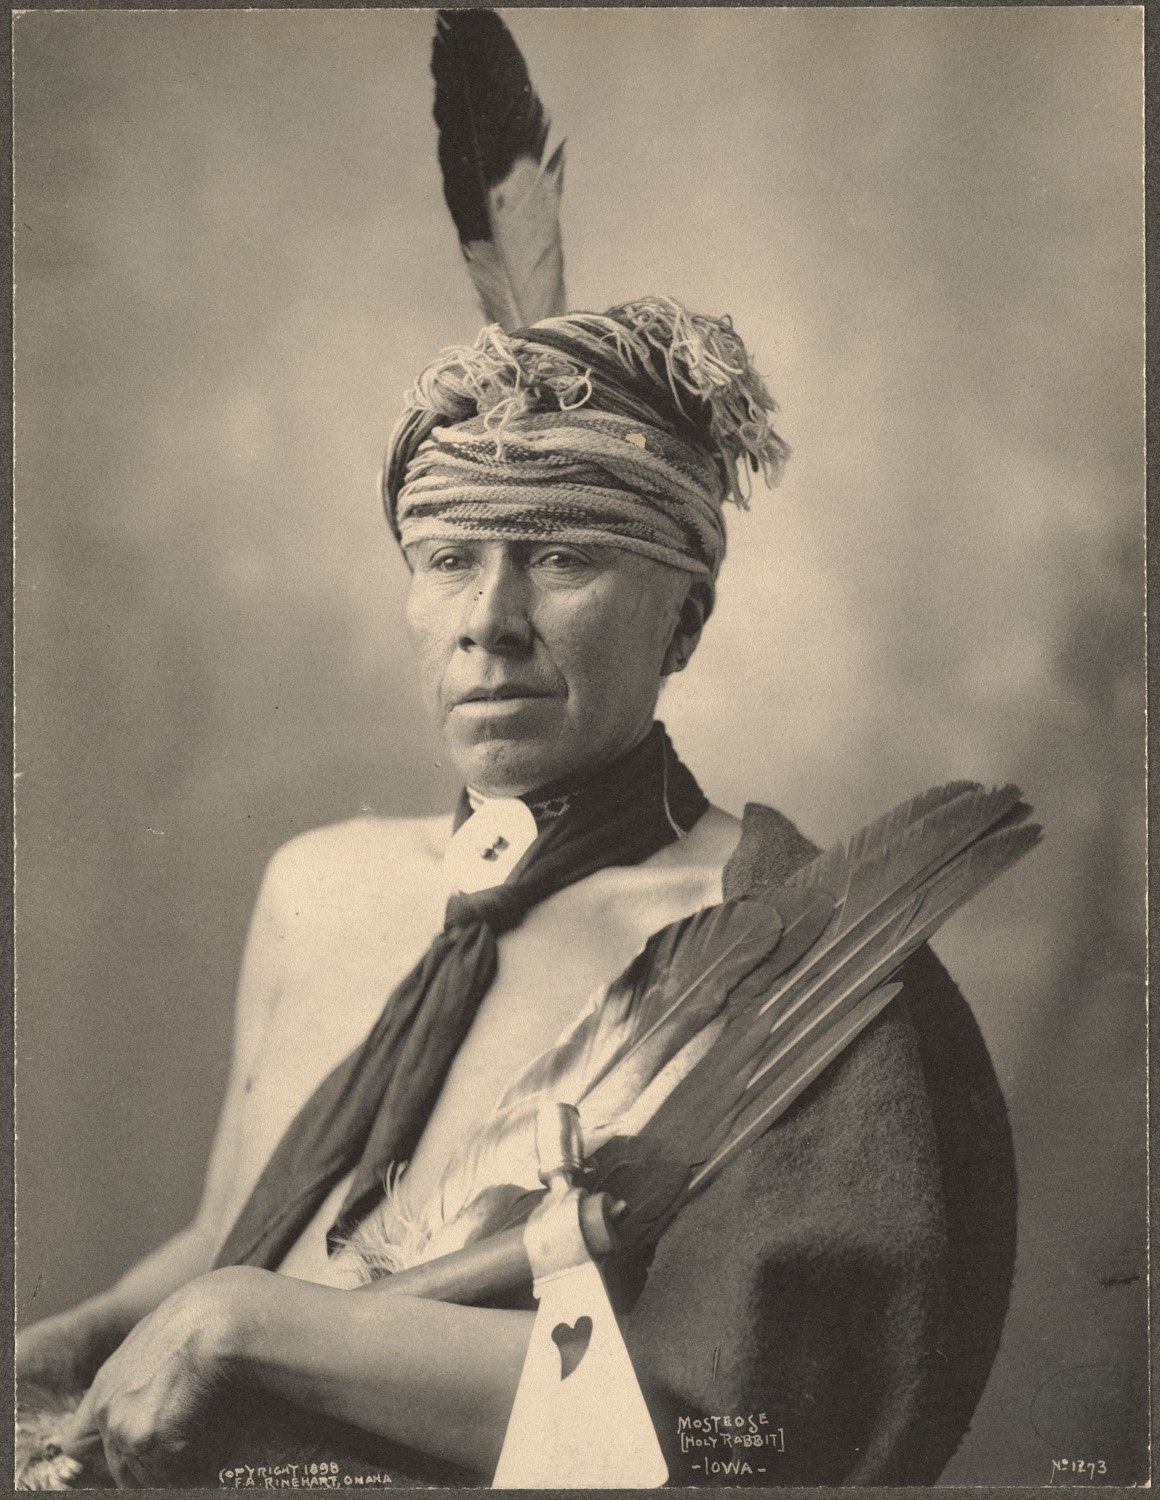 Mosteose (Holy Rabbit), Iowa, 1899. (Photo by Frank A. Rinehart)